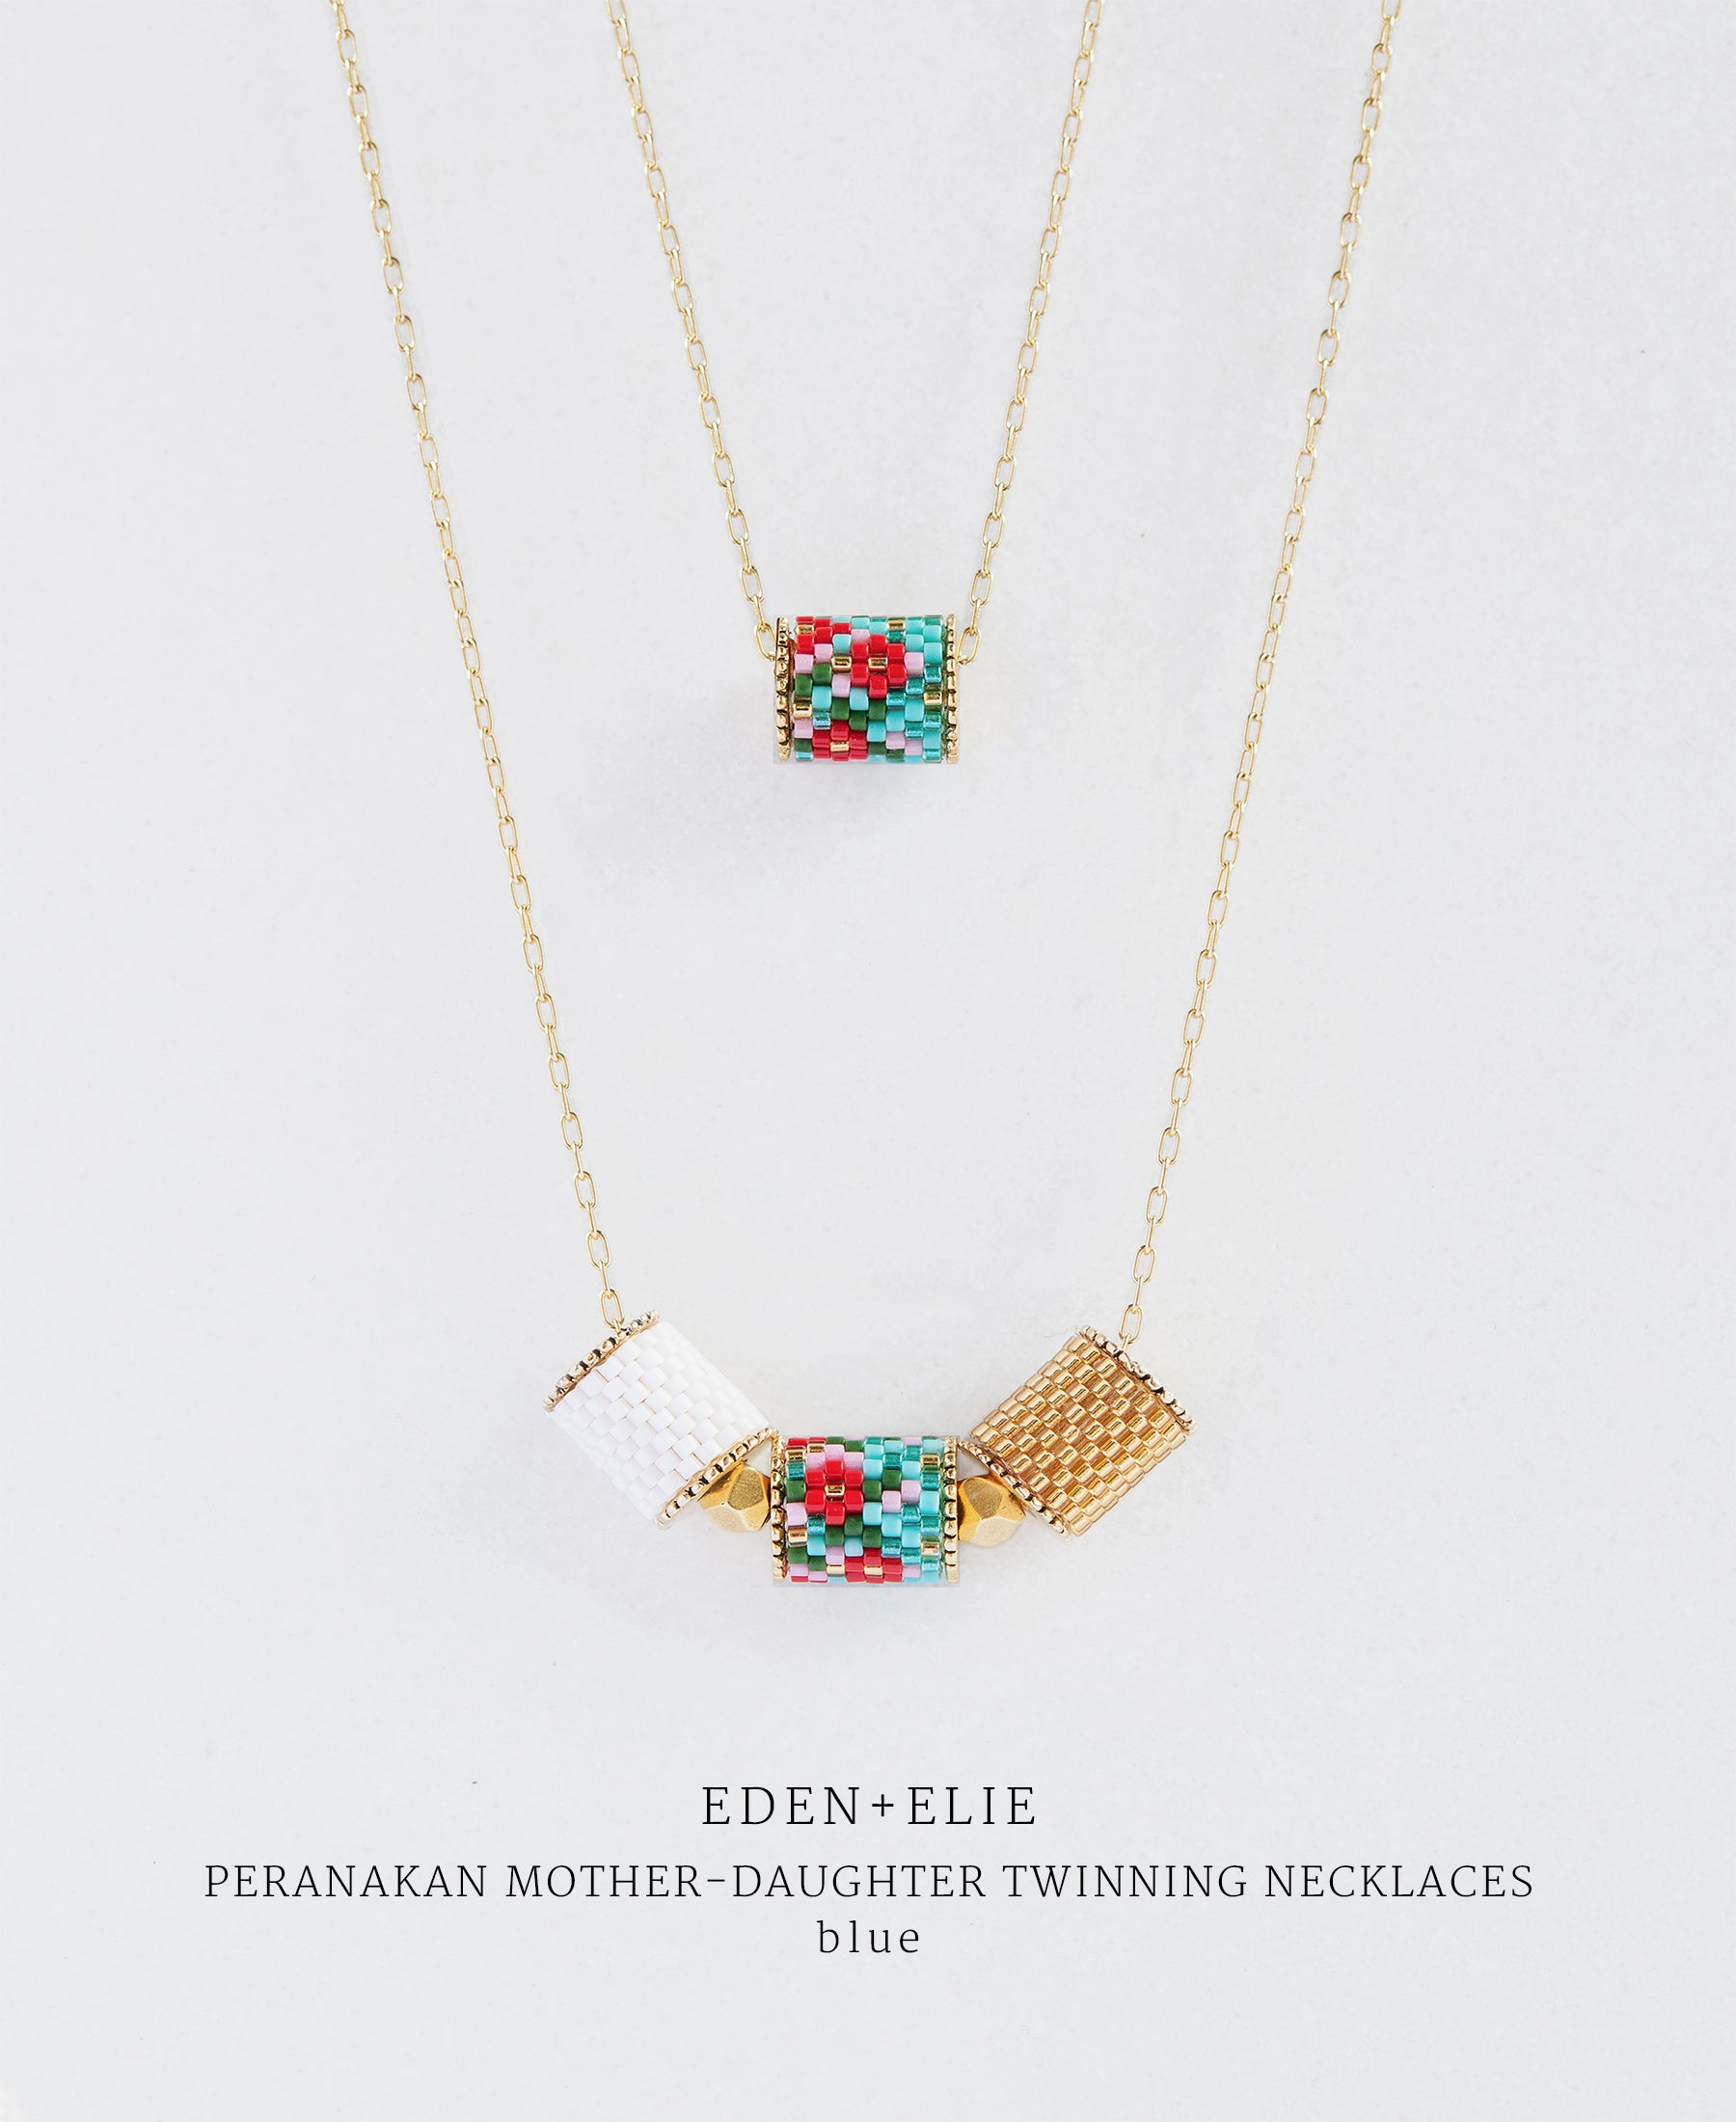 EDEN + ELIE Mother-Daughter twinning necklaces set - peranakan blue